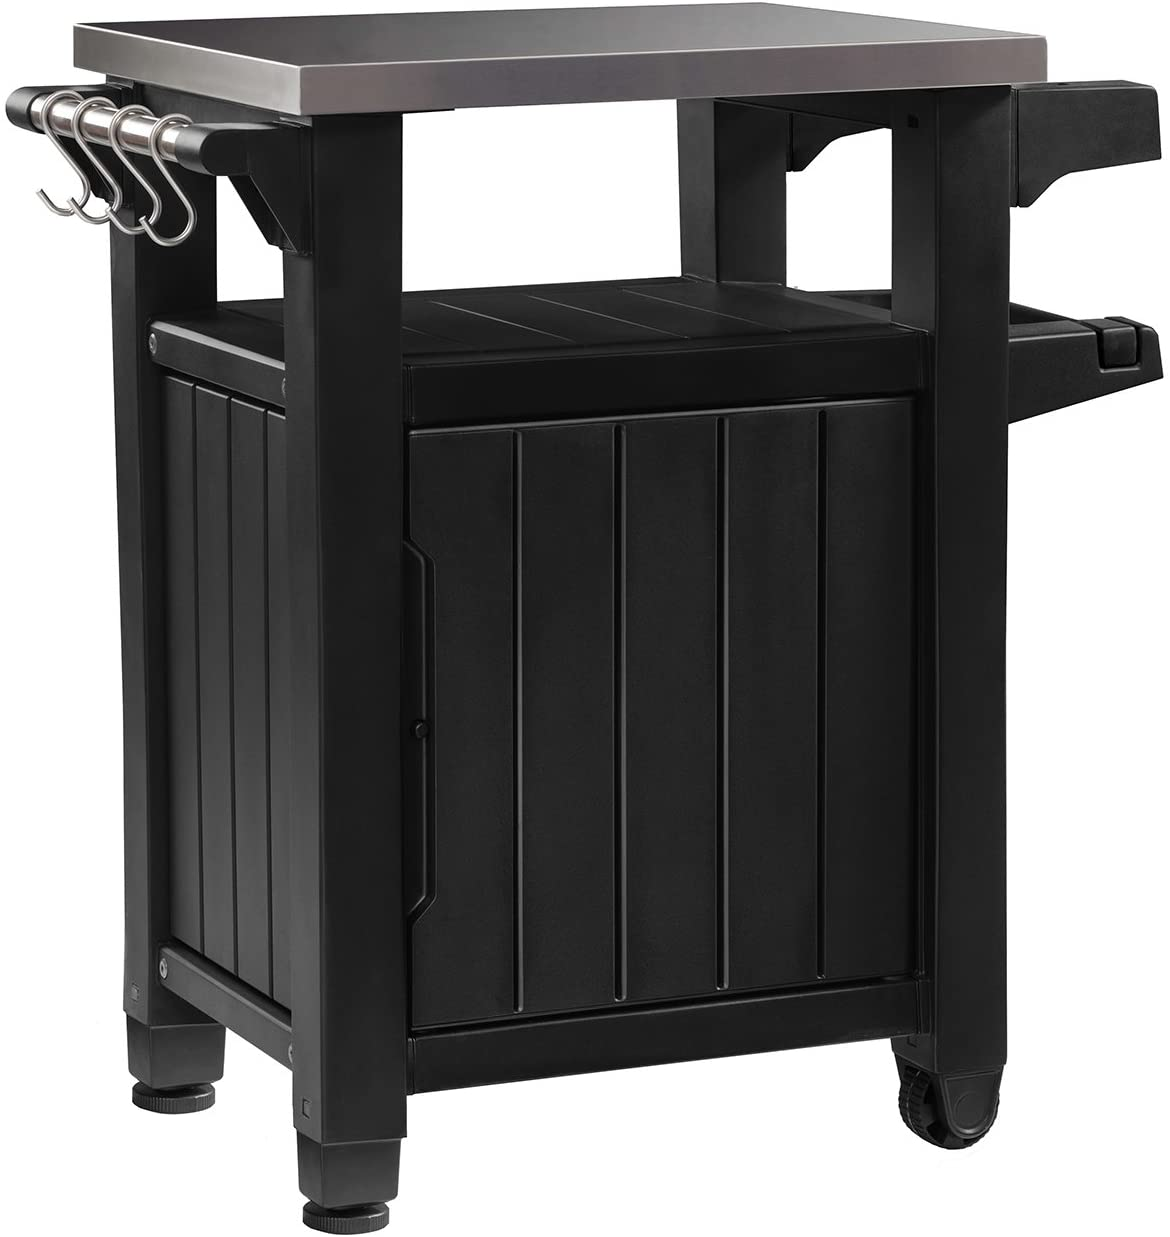 Amazon Com Keter Unity Portable Outdoor Table And Storage Cabinet With Hooks For Grill Accessories Stainless Steel Top For Patio Kitchen Island Or Bar Cart Dark Grey Garden Outdoor